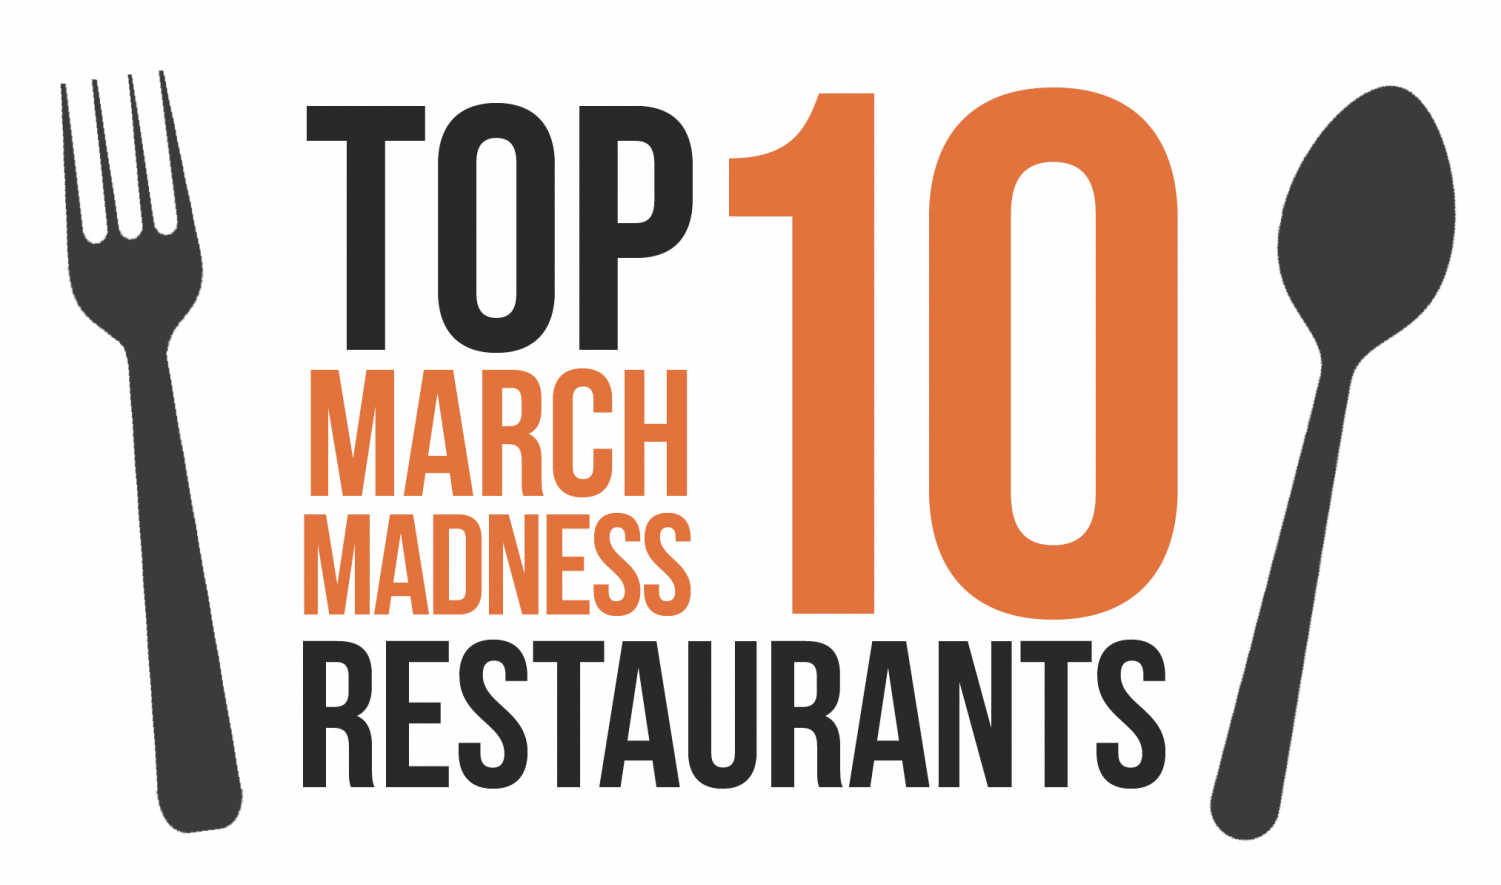 Food critic Matt Cooper lists his food recommendations for anyone in Wichita for March Madness.